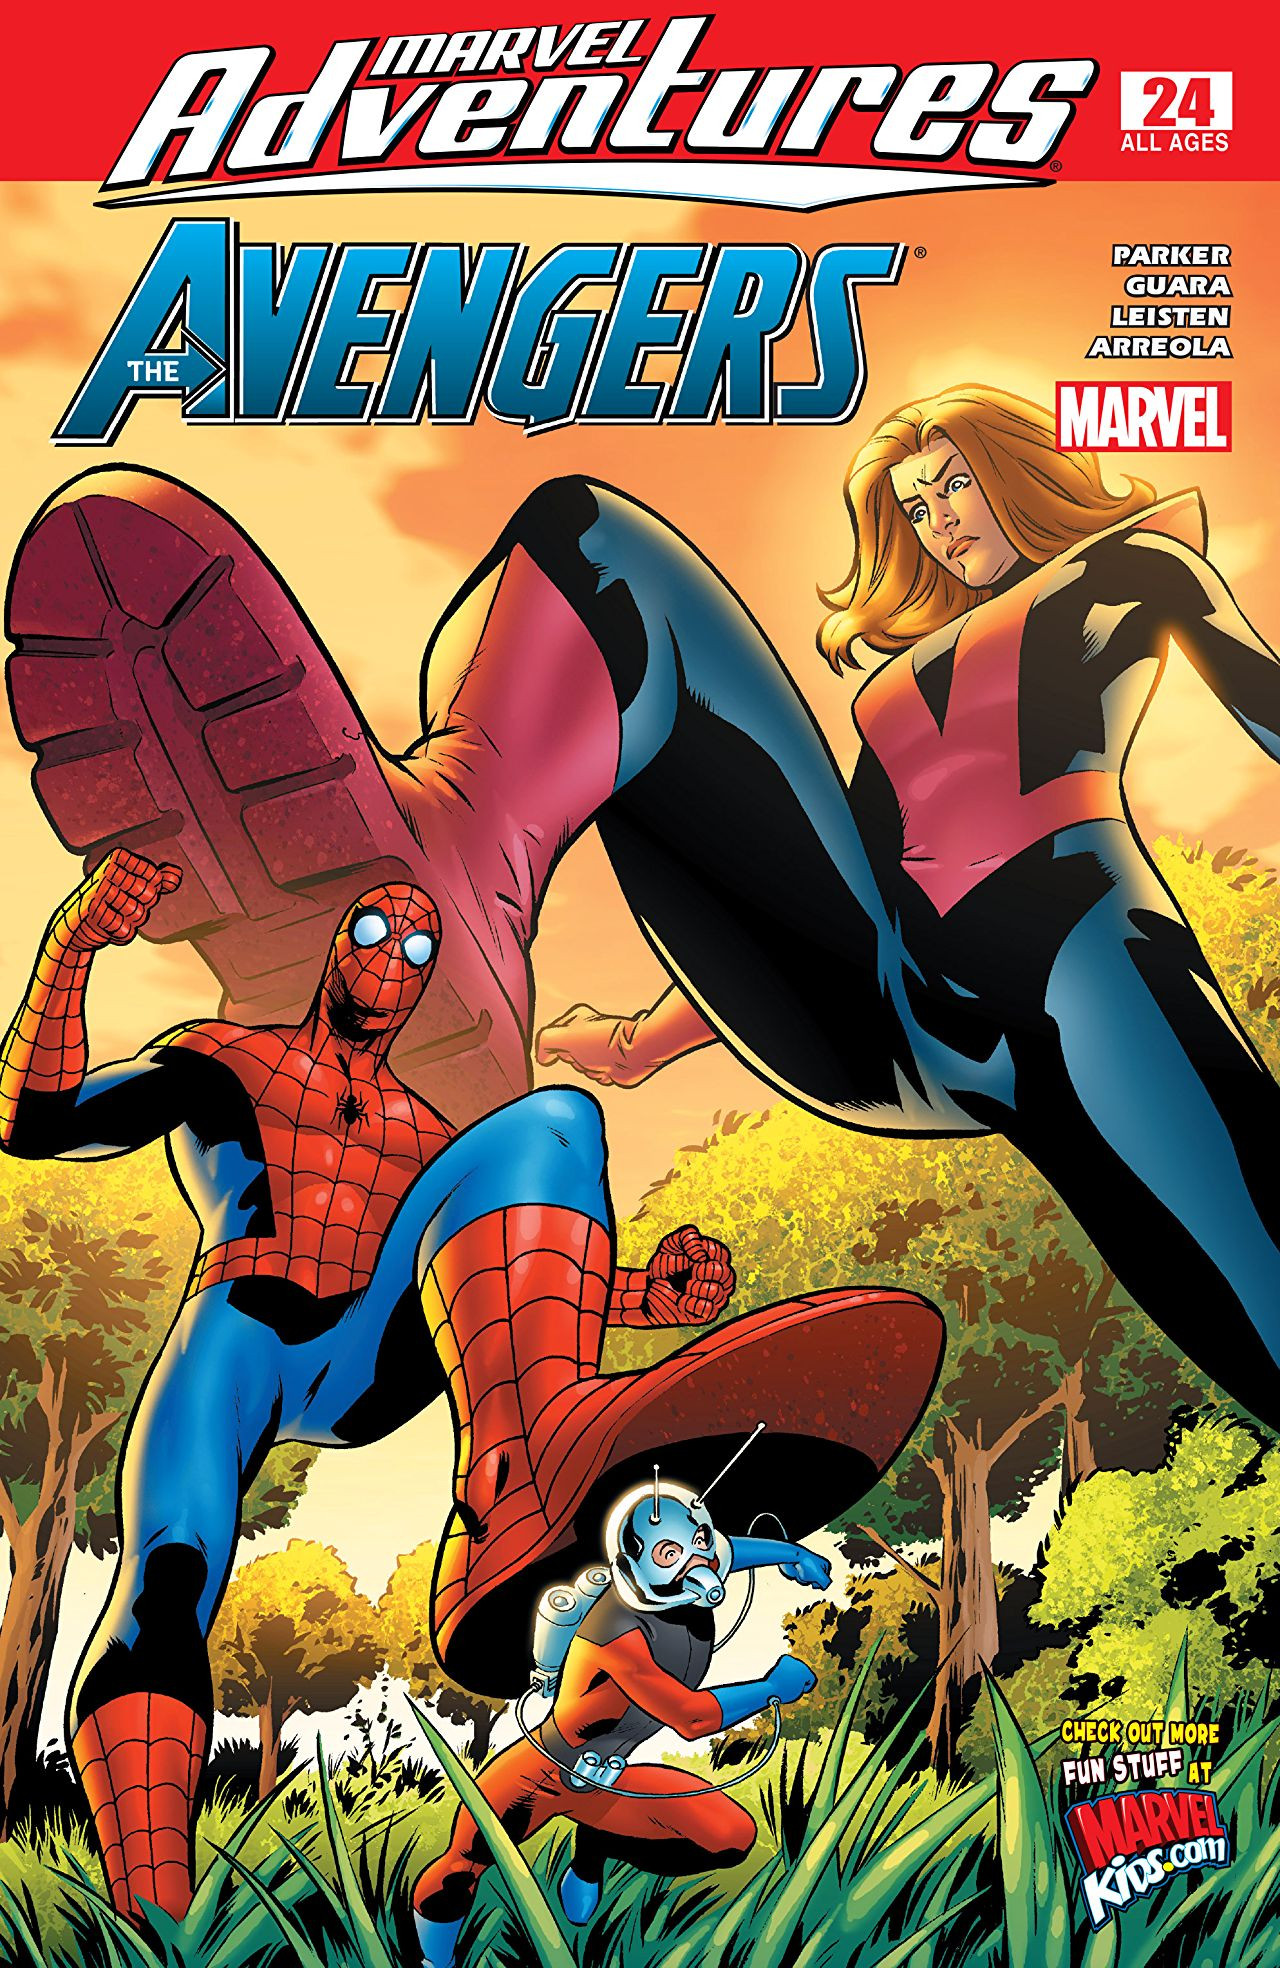 Marvel Adventures: The Avengers Vol 1 24